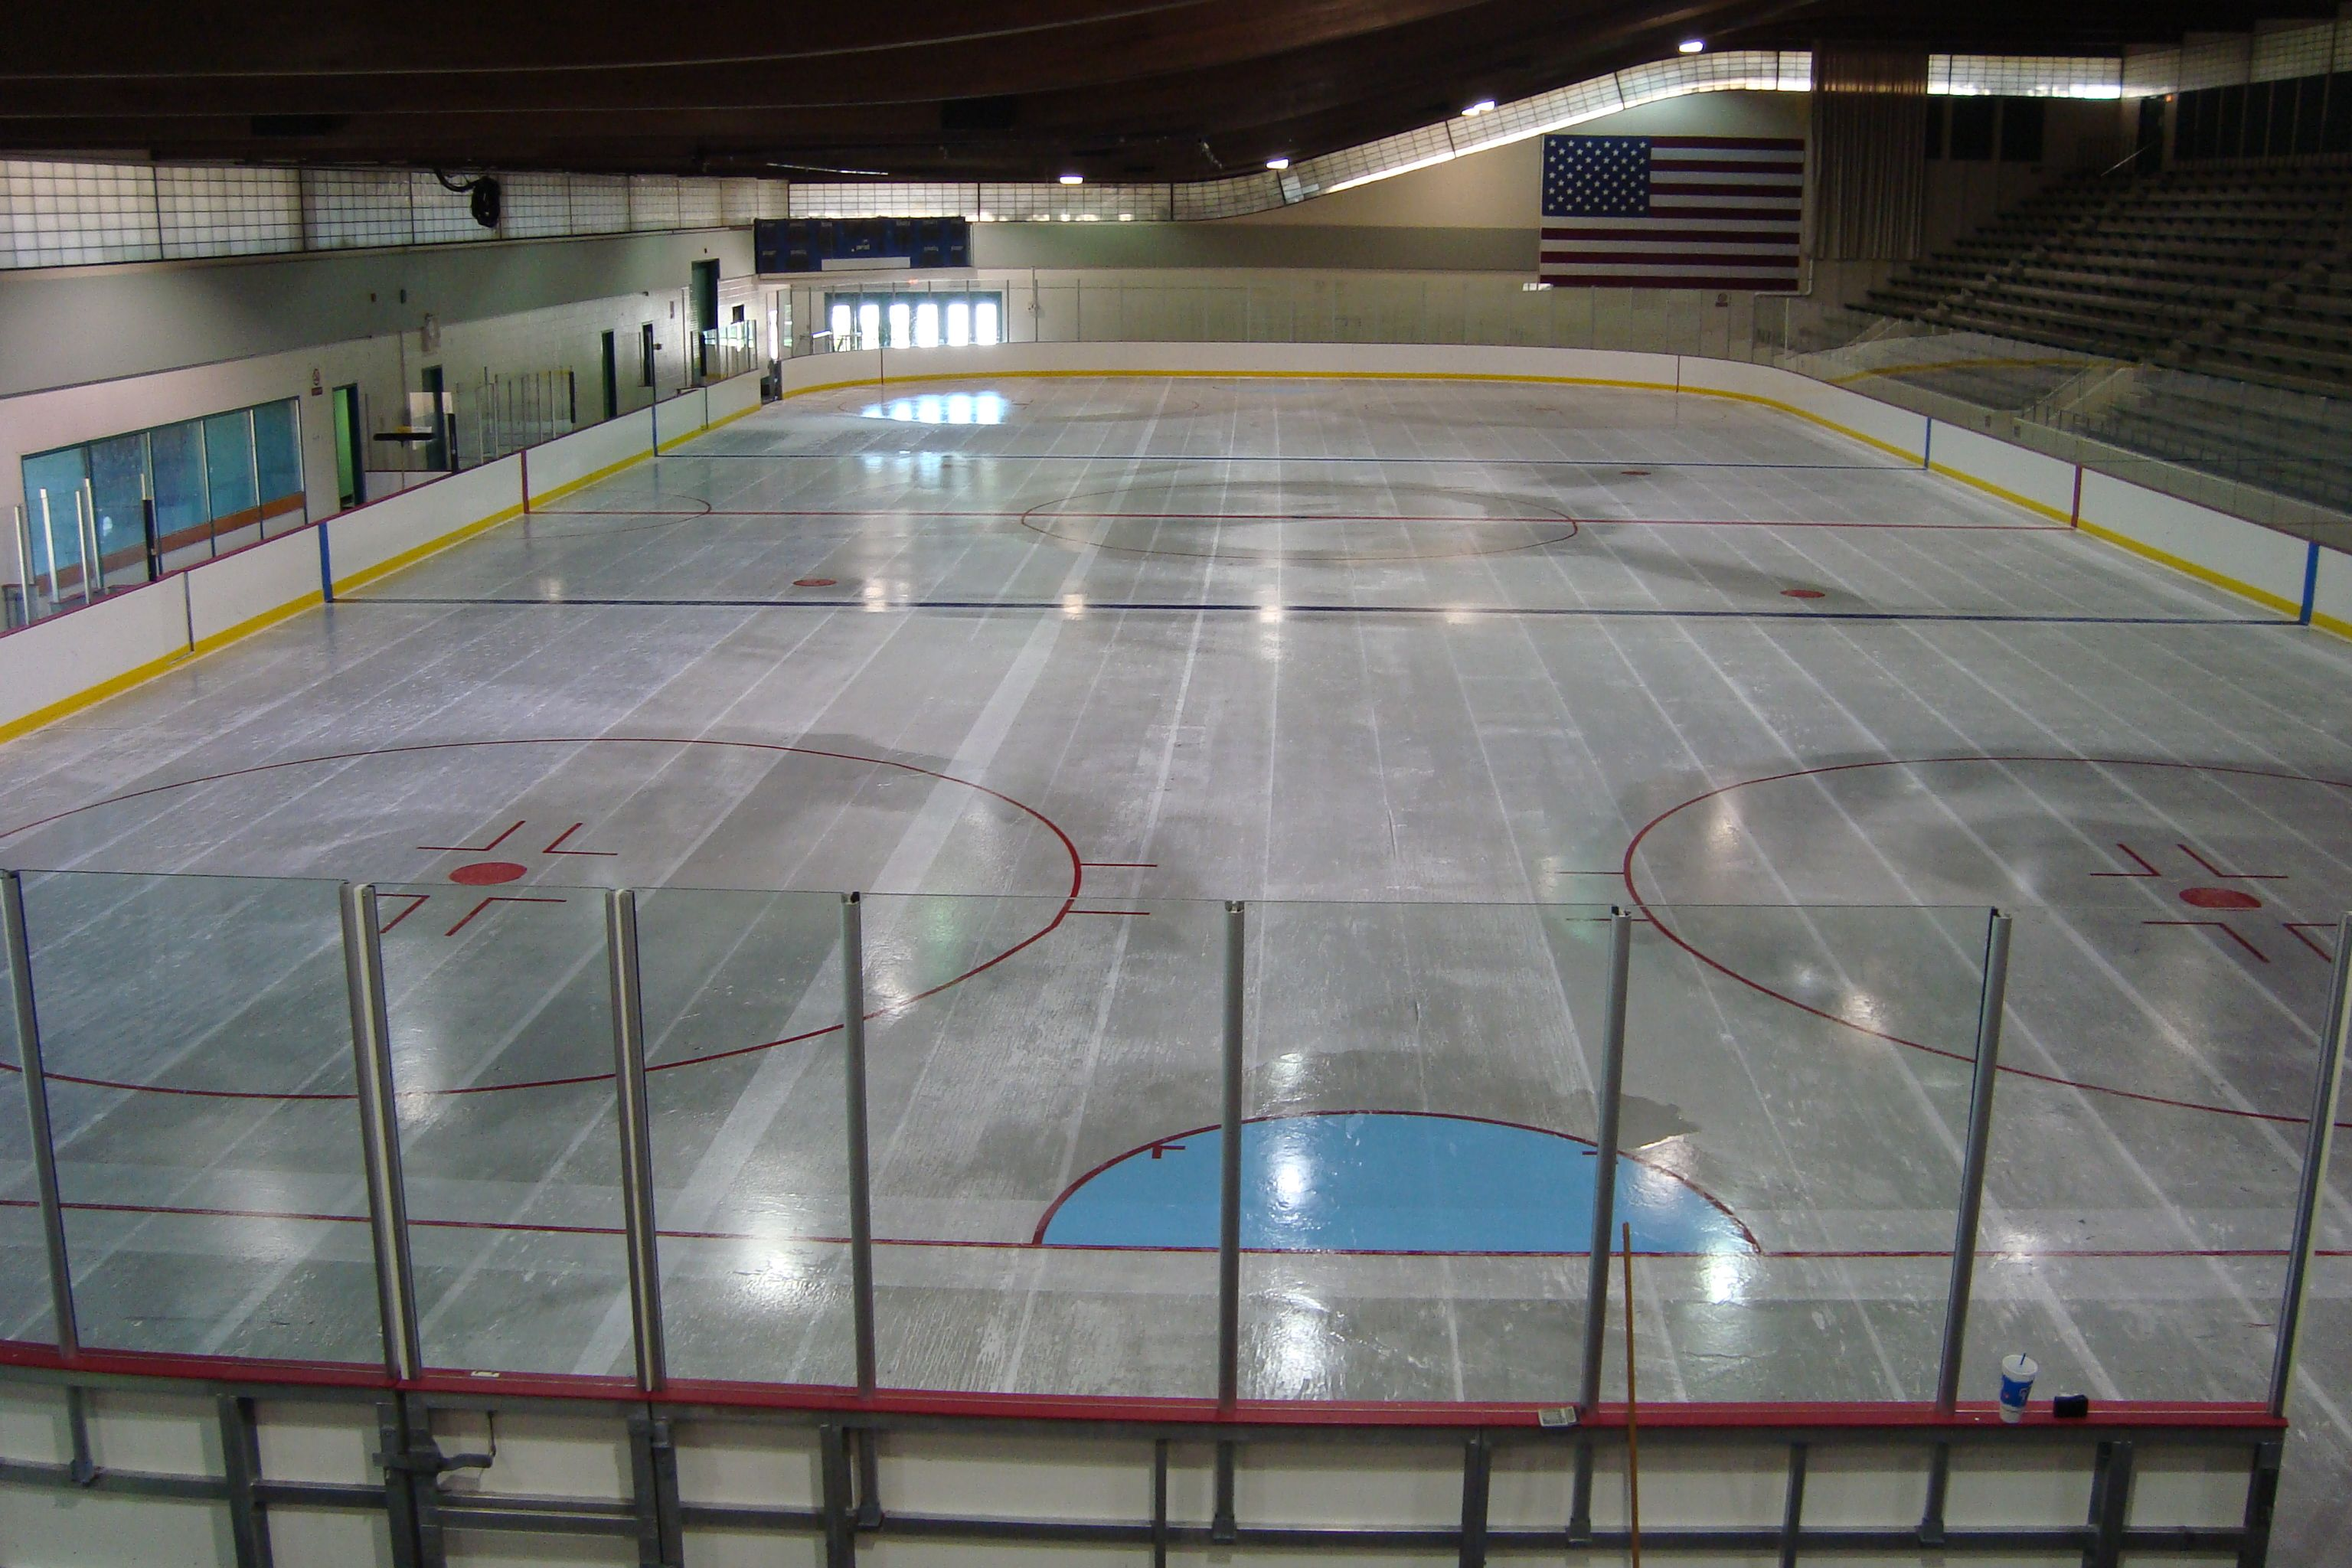 Queeny Ice Rink Nhl Size Rink Skate Lessons Available Rent The Rink For Fund Raisers Or Parties Hockey And Public Sessions O Hockey Hockey Rink Ice Rink